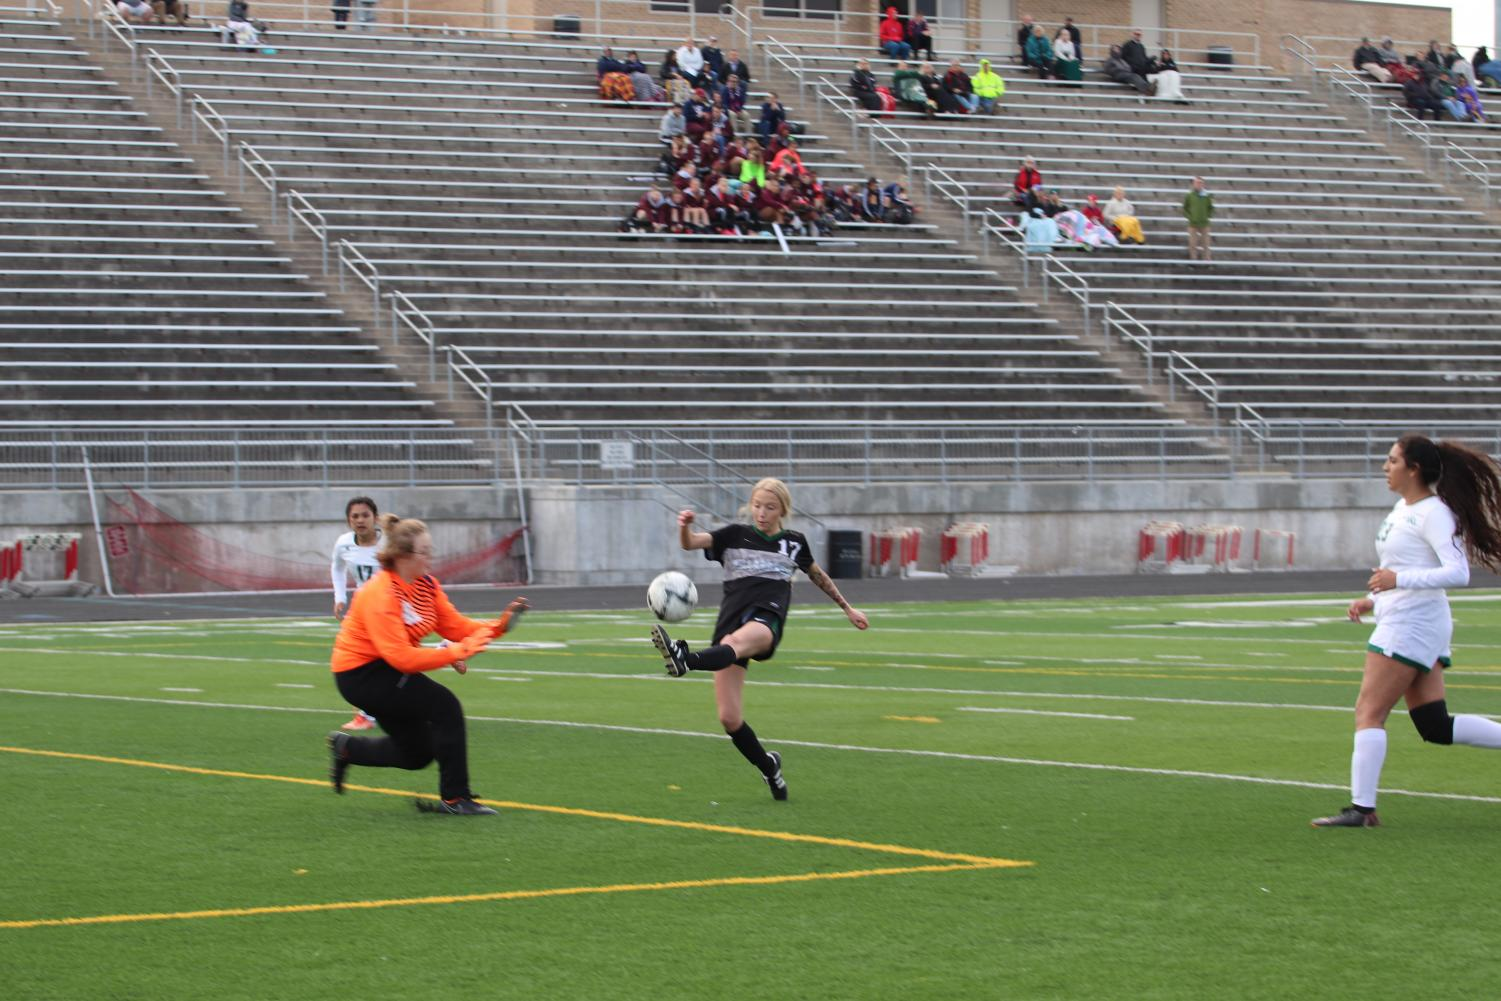 Junior Sierra Schmidt looks to chip the keeper during Millard West's 16-0 win over Omaha Benson.